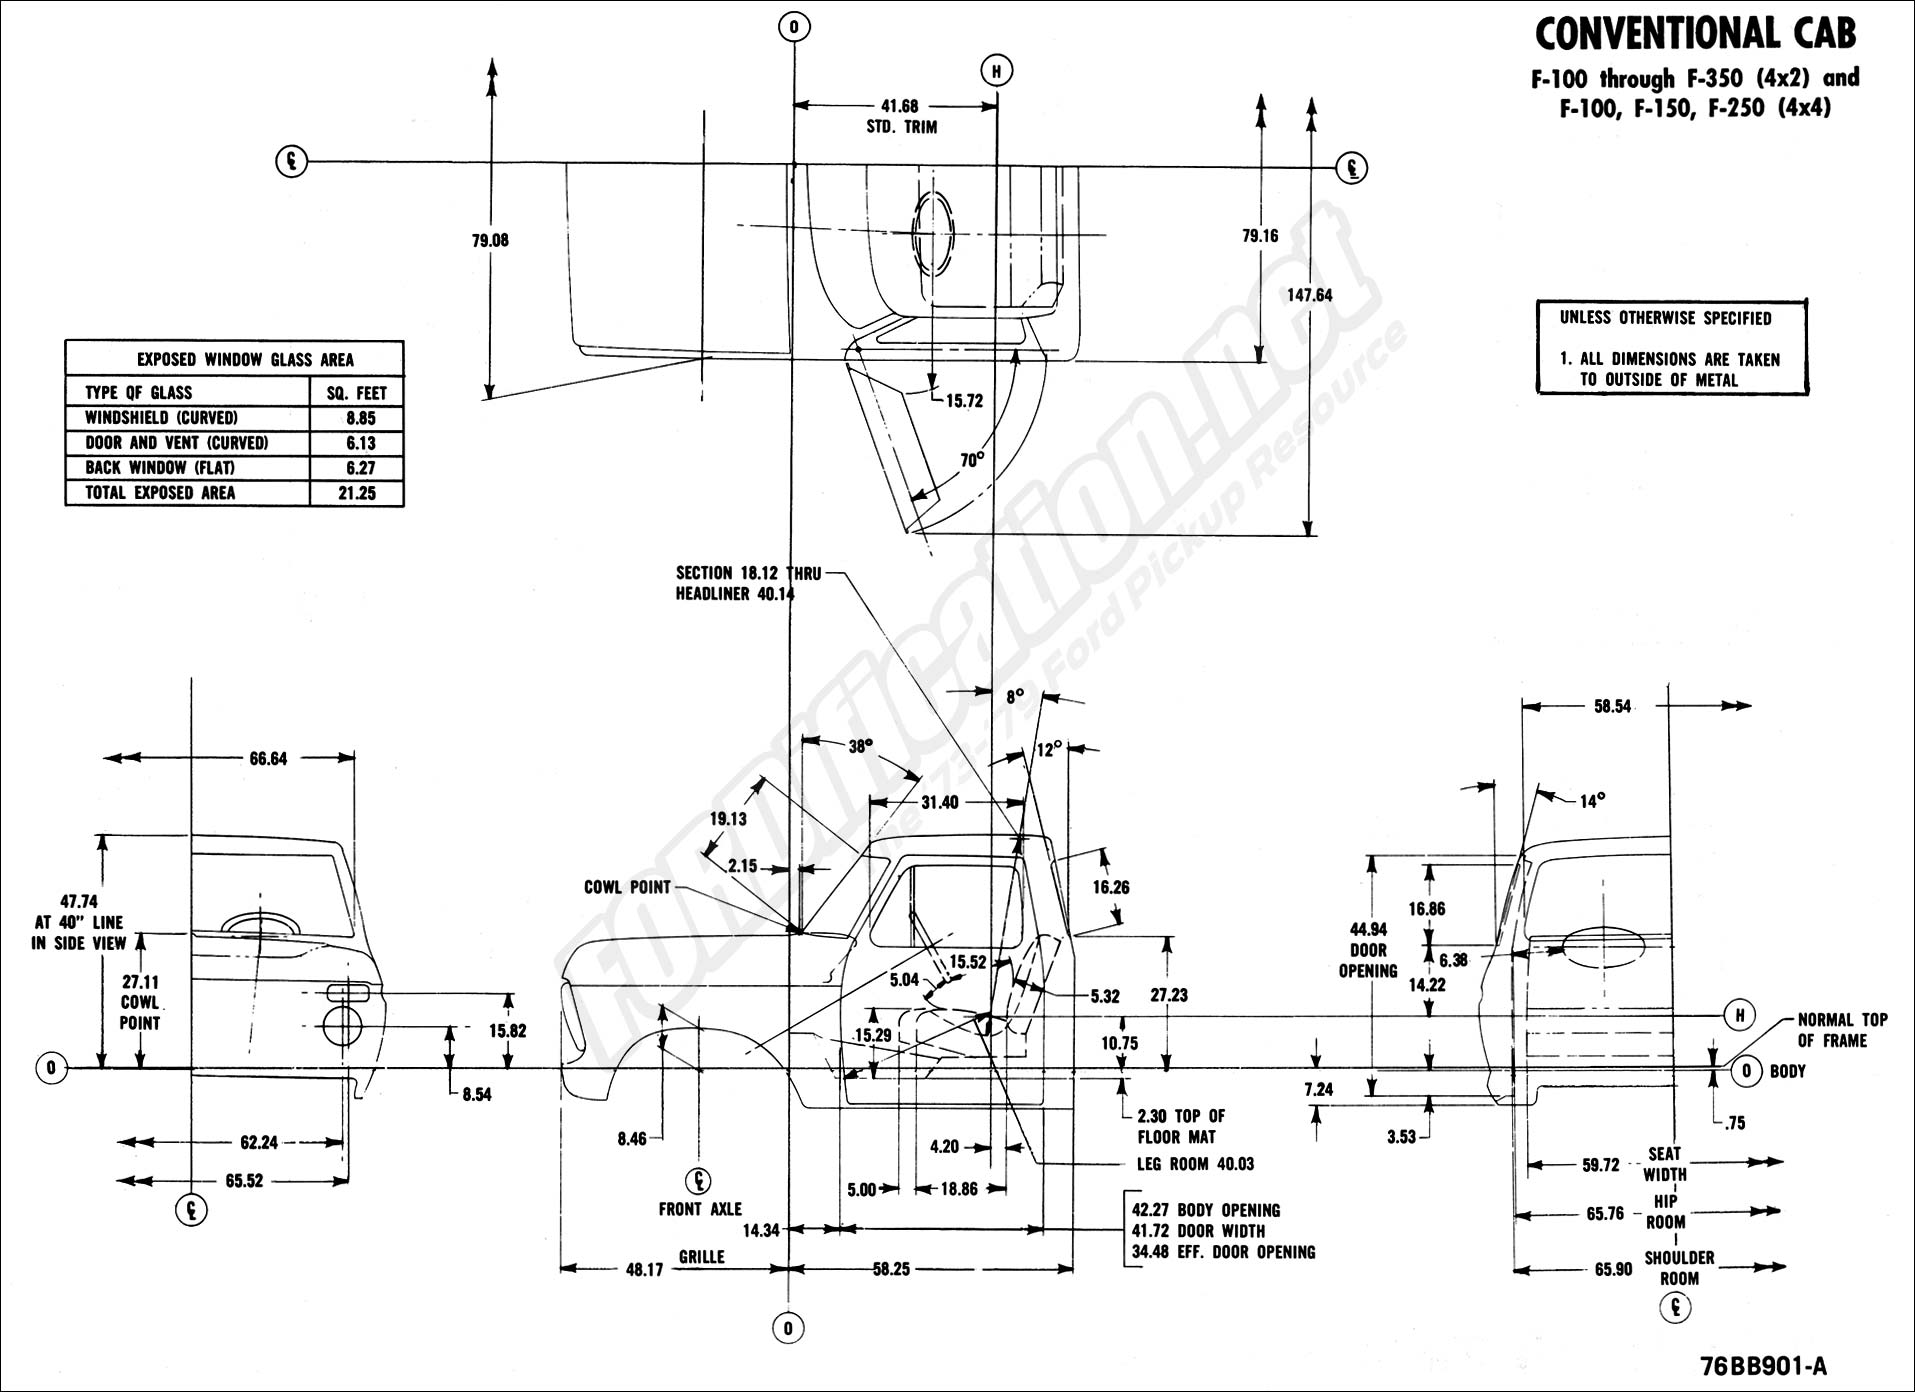 Ford body builders layout